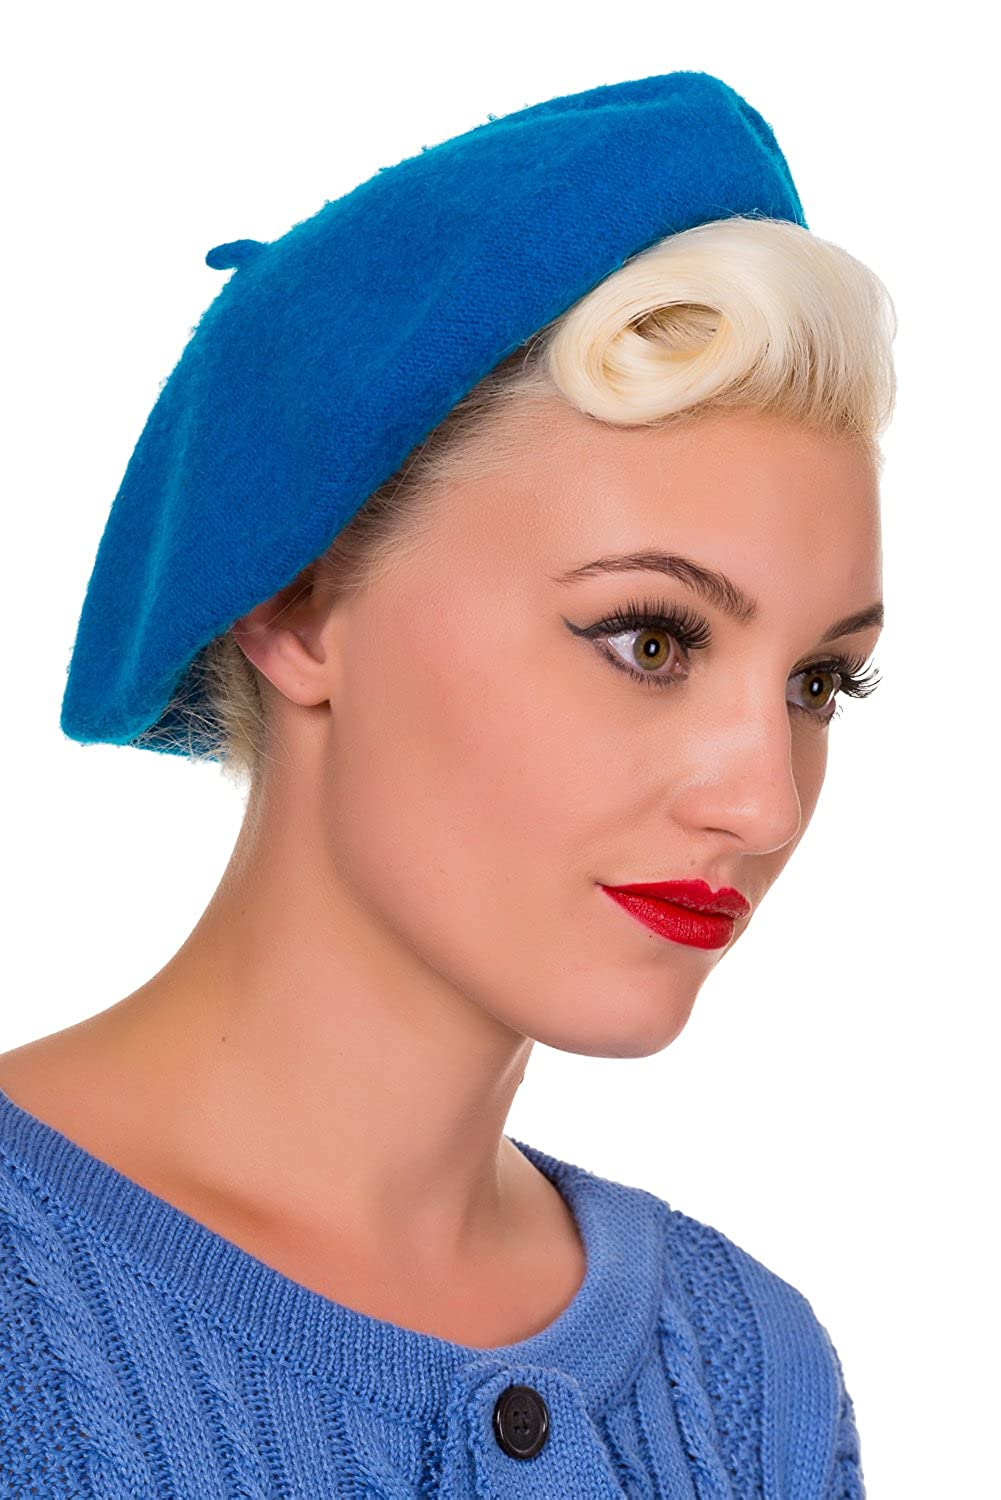 1940s Style Hats Banned Claire Vintage Retro Beret Hat $15.95 AT vintagedancer.com